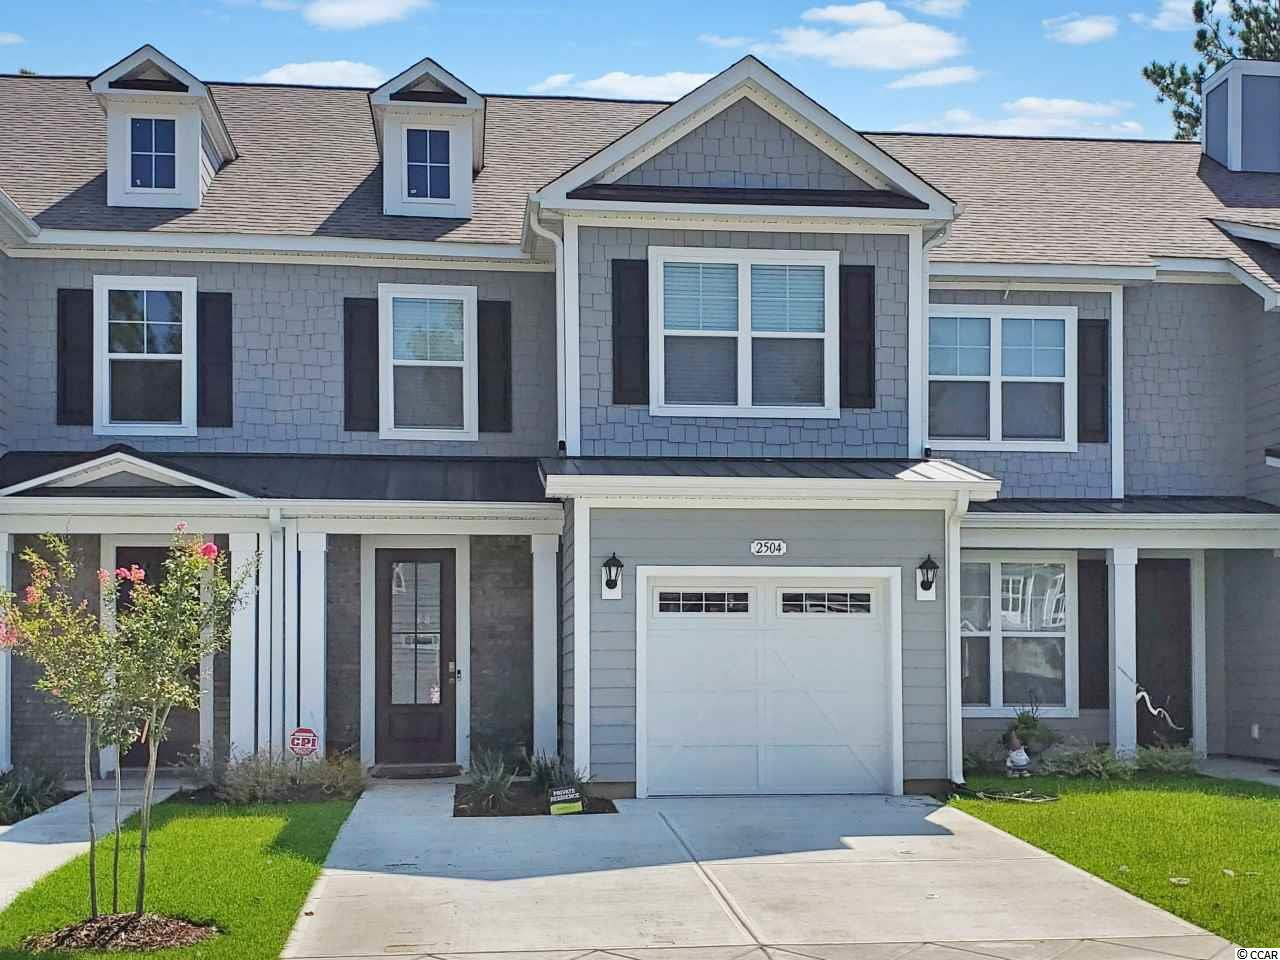 Living the Dream!! Super Nice Upscale Townhome in the Gated Community of Blackwater at the Dye in Barefoot Resort and Golf.  This townhome offers 3 bedrooms and 2.5 baths is located on the 1st fairway of the Dye Golf Course.  This open floor plan boasts first floor ceramic tile throughout, stained oak stair treads, screened porch, granite counter tops, white painted maple cabinets, high end Frigidaire Gallery stainless steel appliances, Skybell door camera, and custom blinds. You will have access to Barefoot Resorts amenities which include 4 championship golf courses, driving range with adjacent Bar & Grill, Greg Norman golf academy, a private beach cabana with seasonal shuttle service to the cabana, 15,000 sq ft saltwater pool on the ICW, full service marina, and restaurants.  With Barefoot Landing being a short drive by car or golf cart,  enjoy the many restaurants, attractions, and shopping that it has to offer.